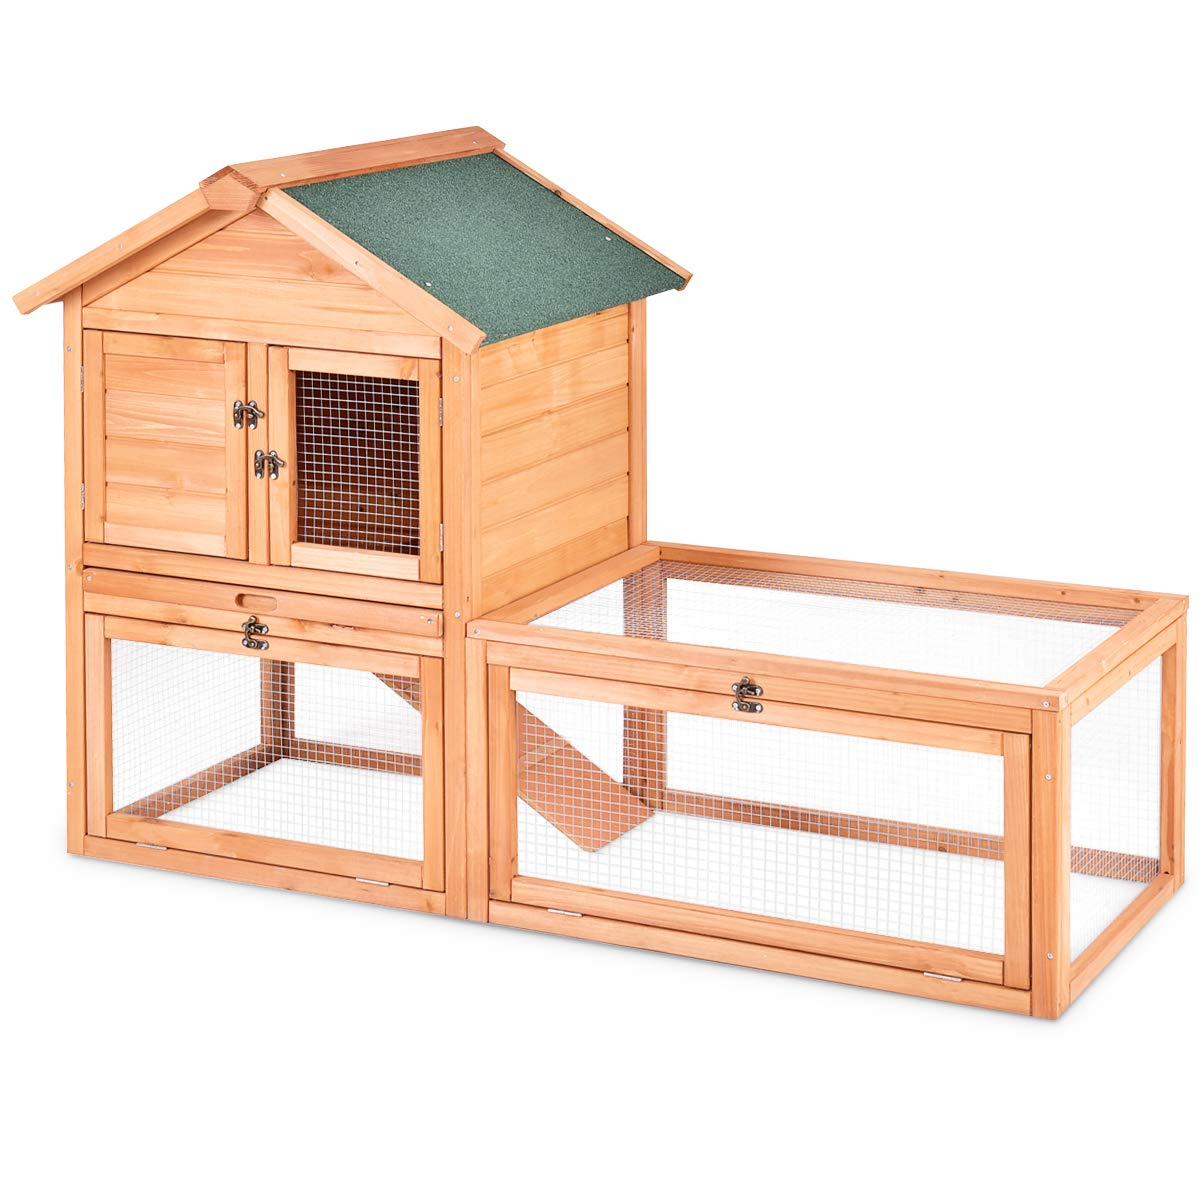 Tangkula Chicken Coop Outdoor Wooden Chicken Coop Garden Backyard Farm Bunny Hen House Rabbit Hutch Small Animal Cage Pet Supplies for Chicken, Duck, Rabbit, etc (56'' x 26'' x 39.5''(L x W x H)) by Tangkula